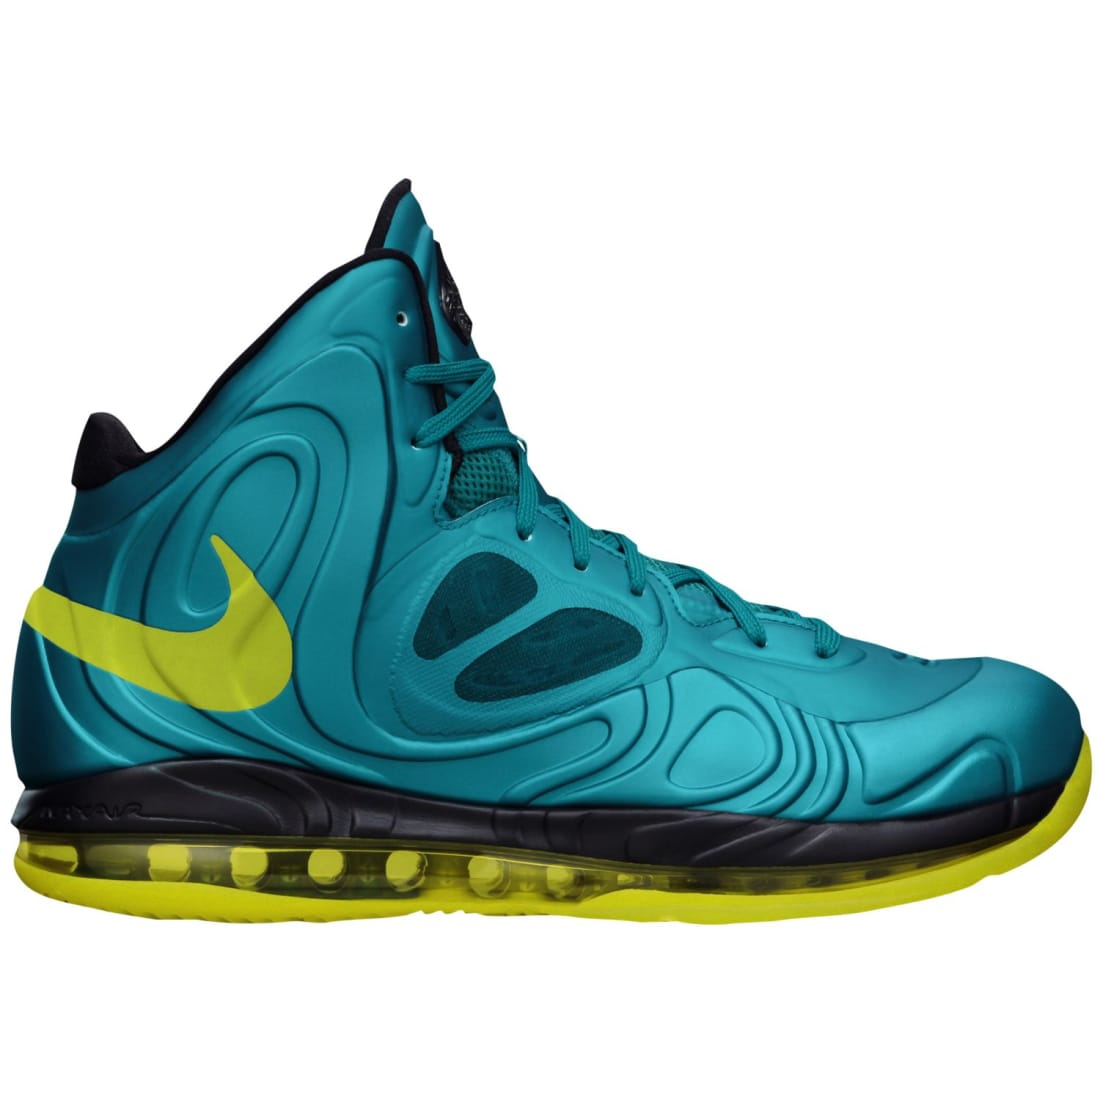 83025ad11fe Nike · Nike Basketball. Nike Air Max Hyperposite. Releases Covered